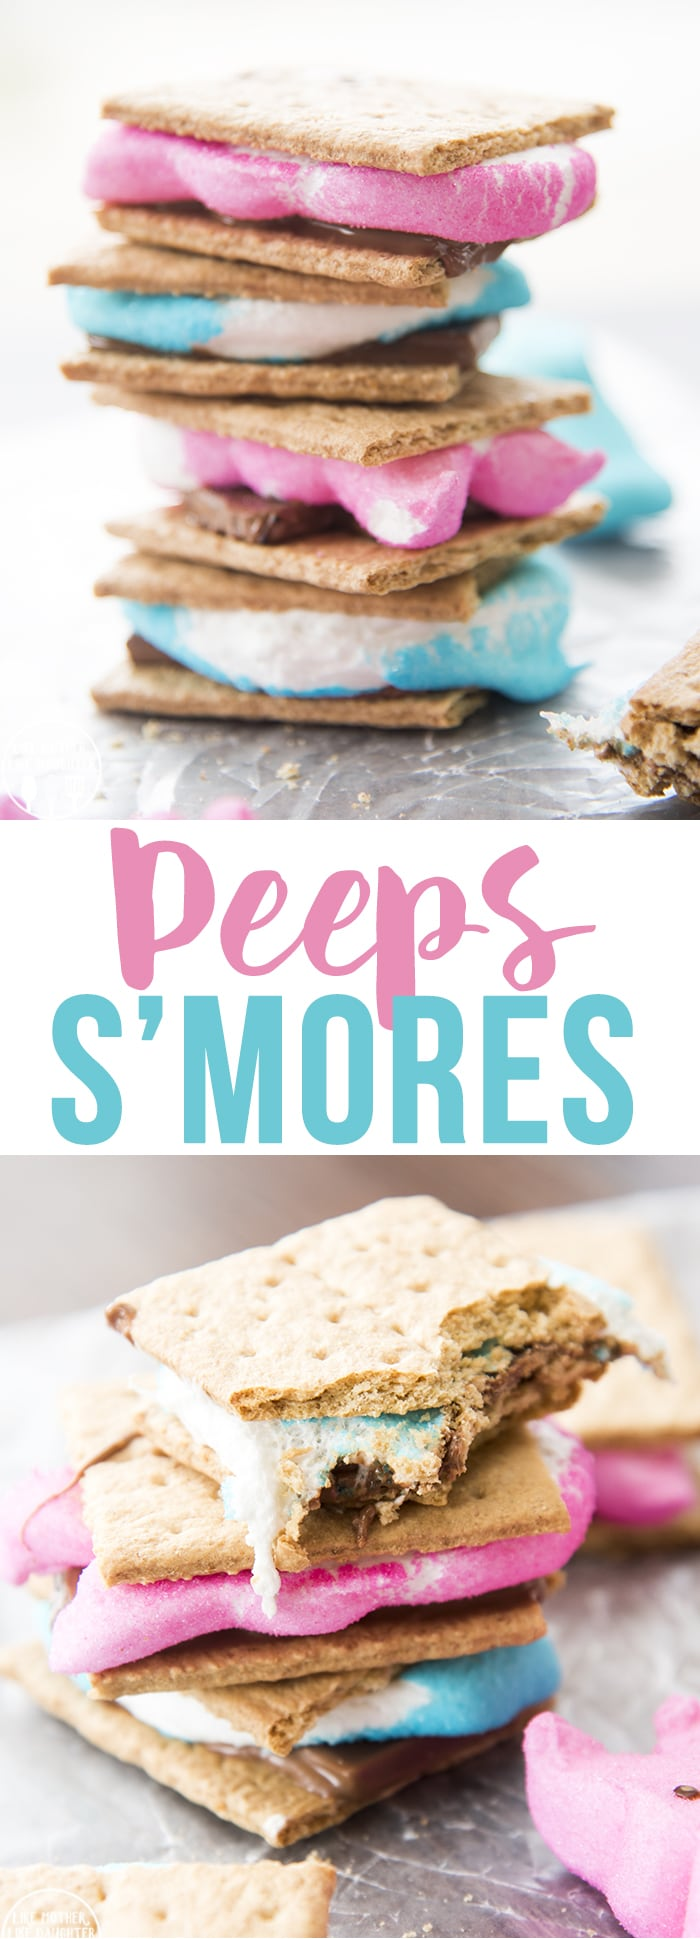 Peeps smores are a fun indoor s'more made with Peeps instead of traditional marshmallows!